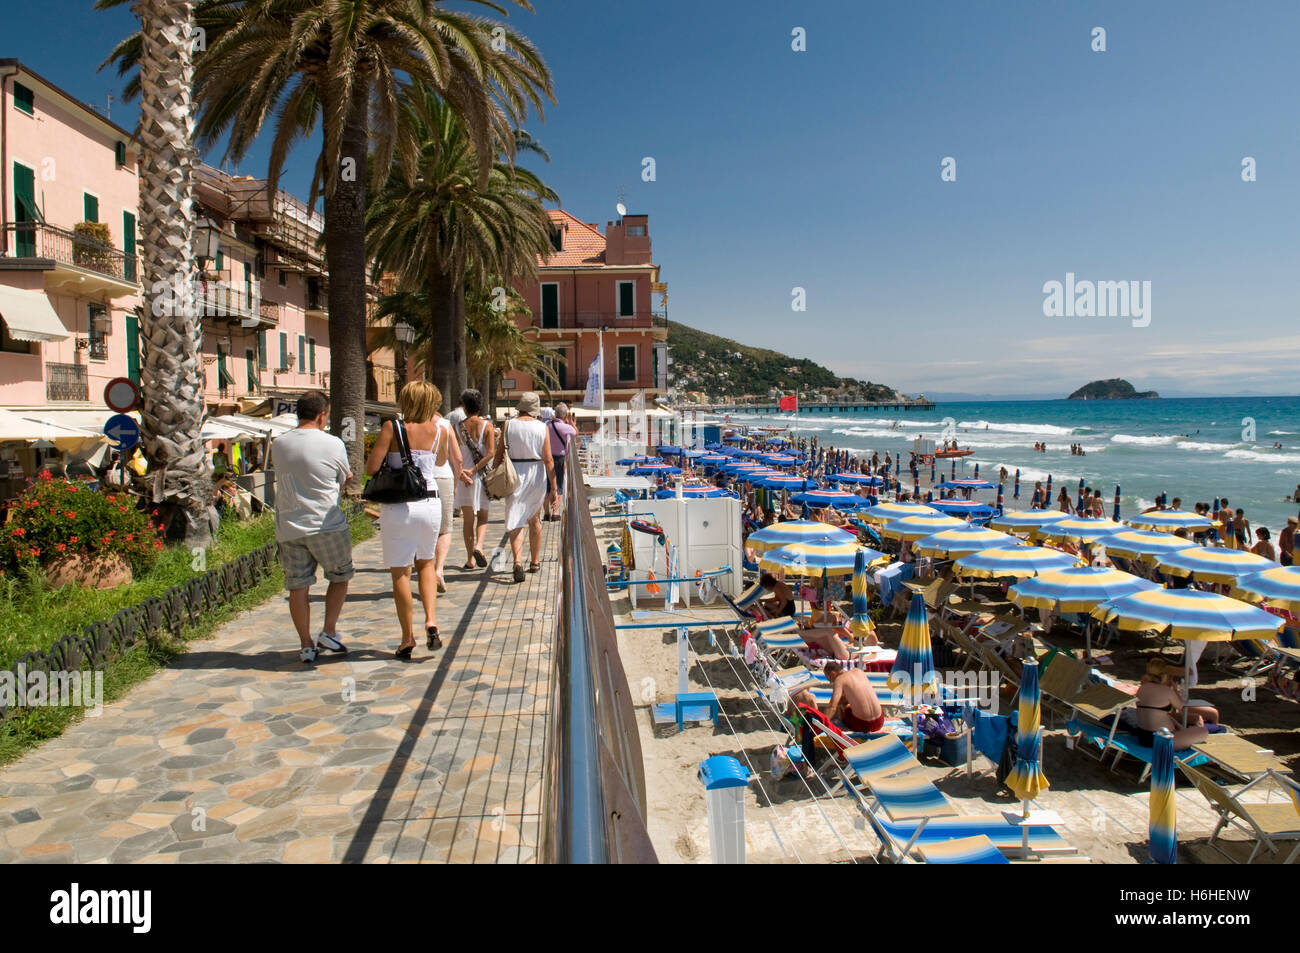 chaise longue beach with Stock Photo Promenade On The Beach Alassio Italian Riviera Liguria Italy Europe 124545285 on T3416 Illustrations Pour L Ete Plage Et Farniente besides Photos Stock Chaise Longue Et Parasol Image4344143 additionally Stock Photo Promenade On The Beach Alassio Italian Riviera Liguria Italy Europe 124545285 likewise Quando Andare In Madagascar additionally 2.